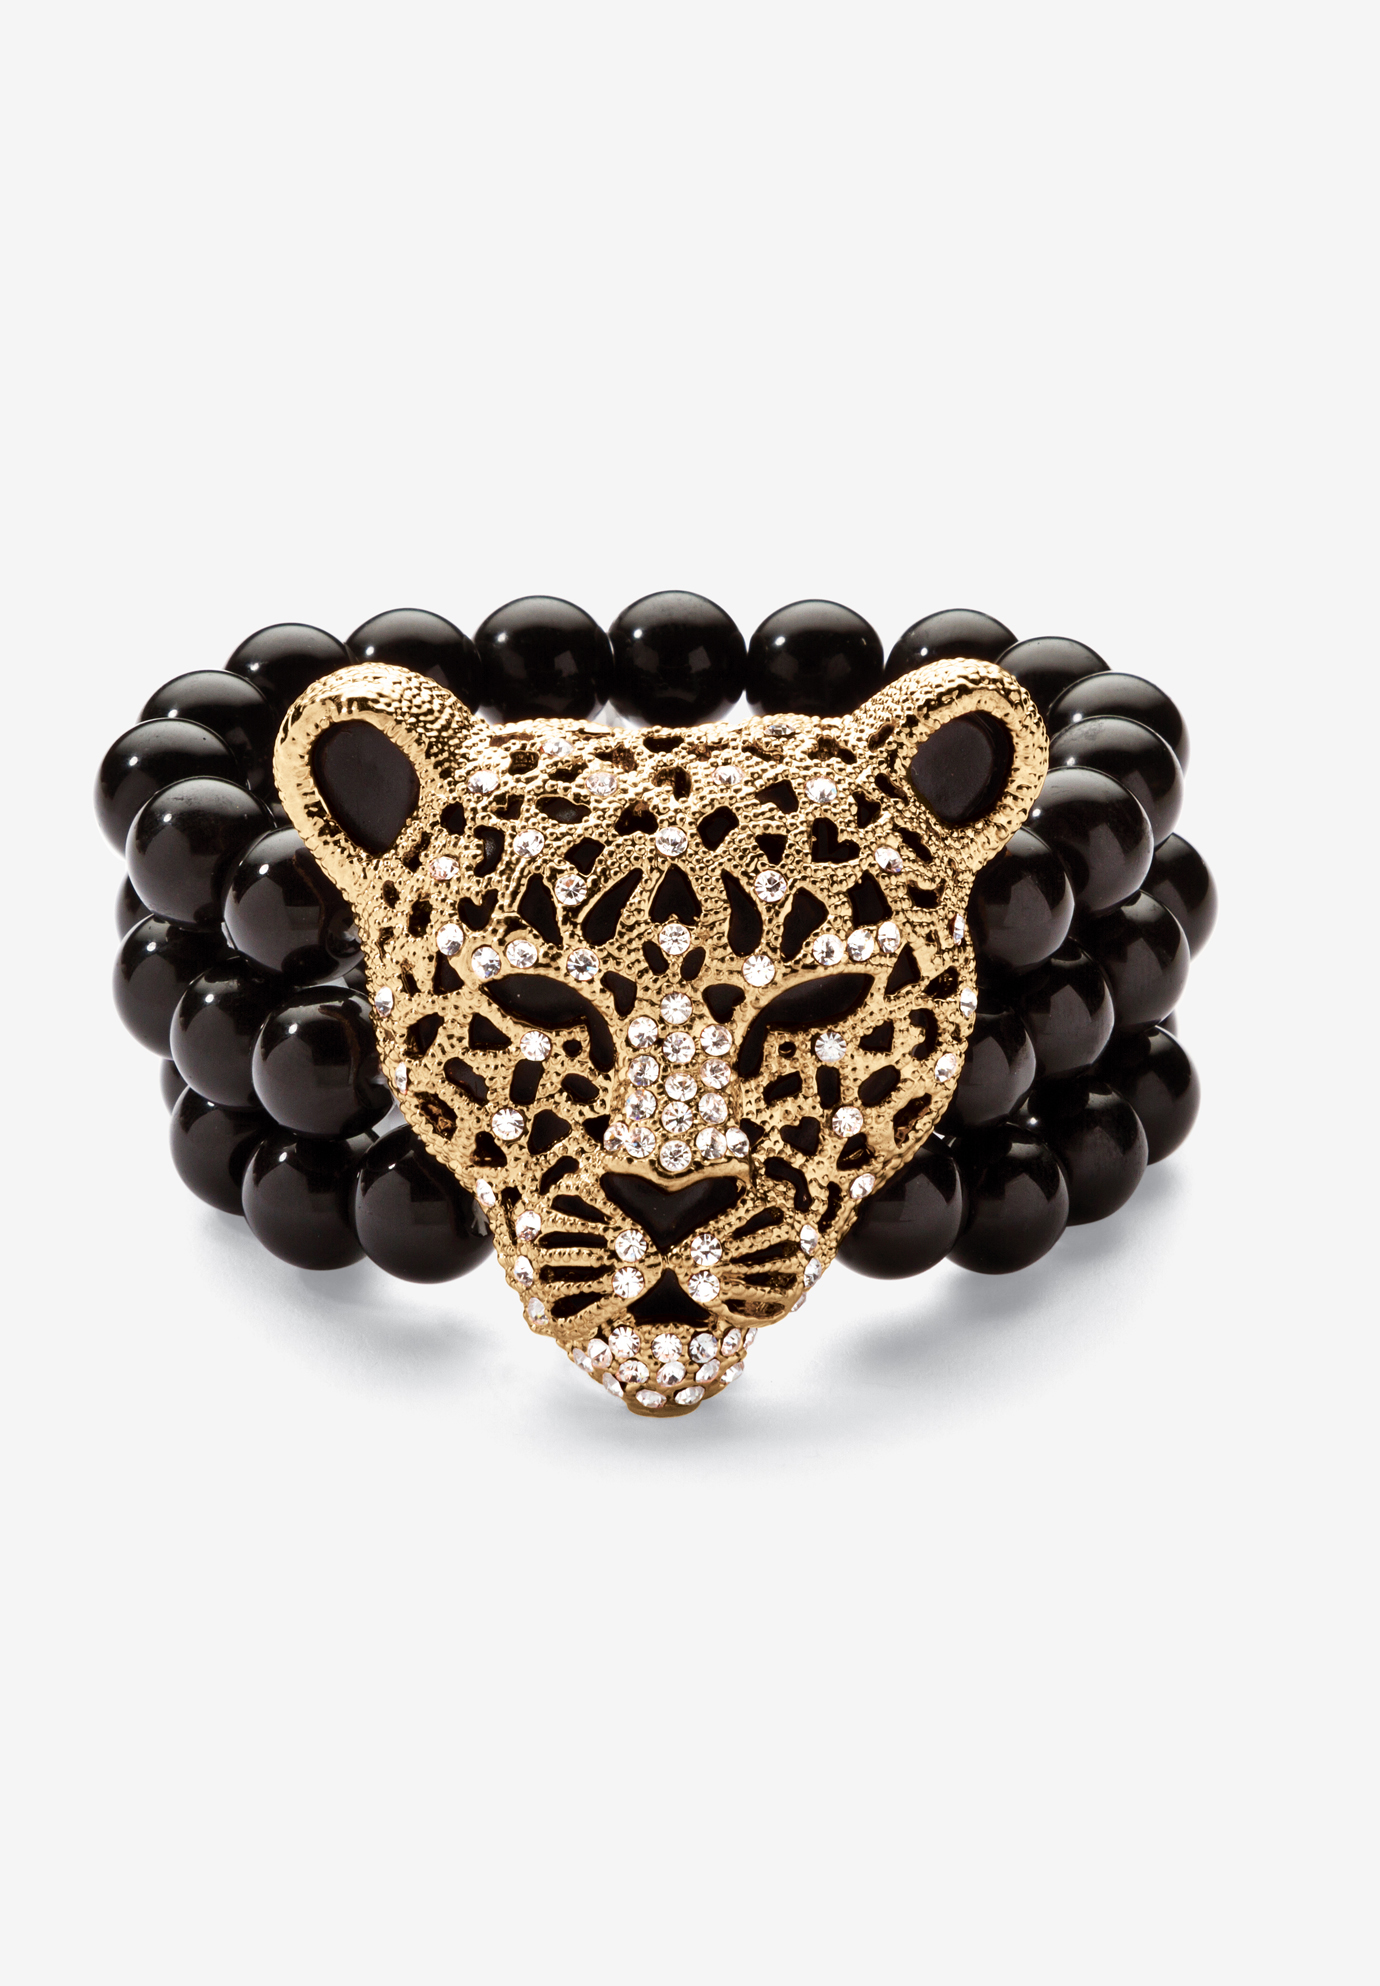 "Goldtone Onyx Leopard Stretch Bracelet (42mm), Round Crystal, 8.5"", GOLD"